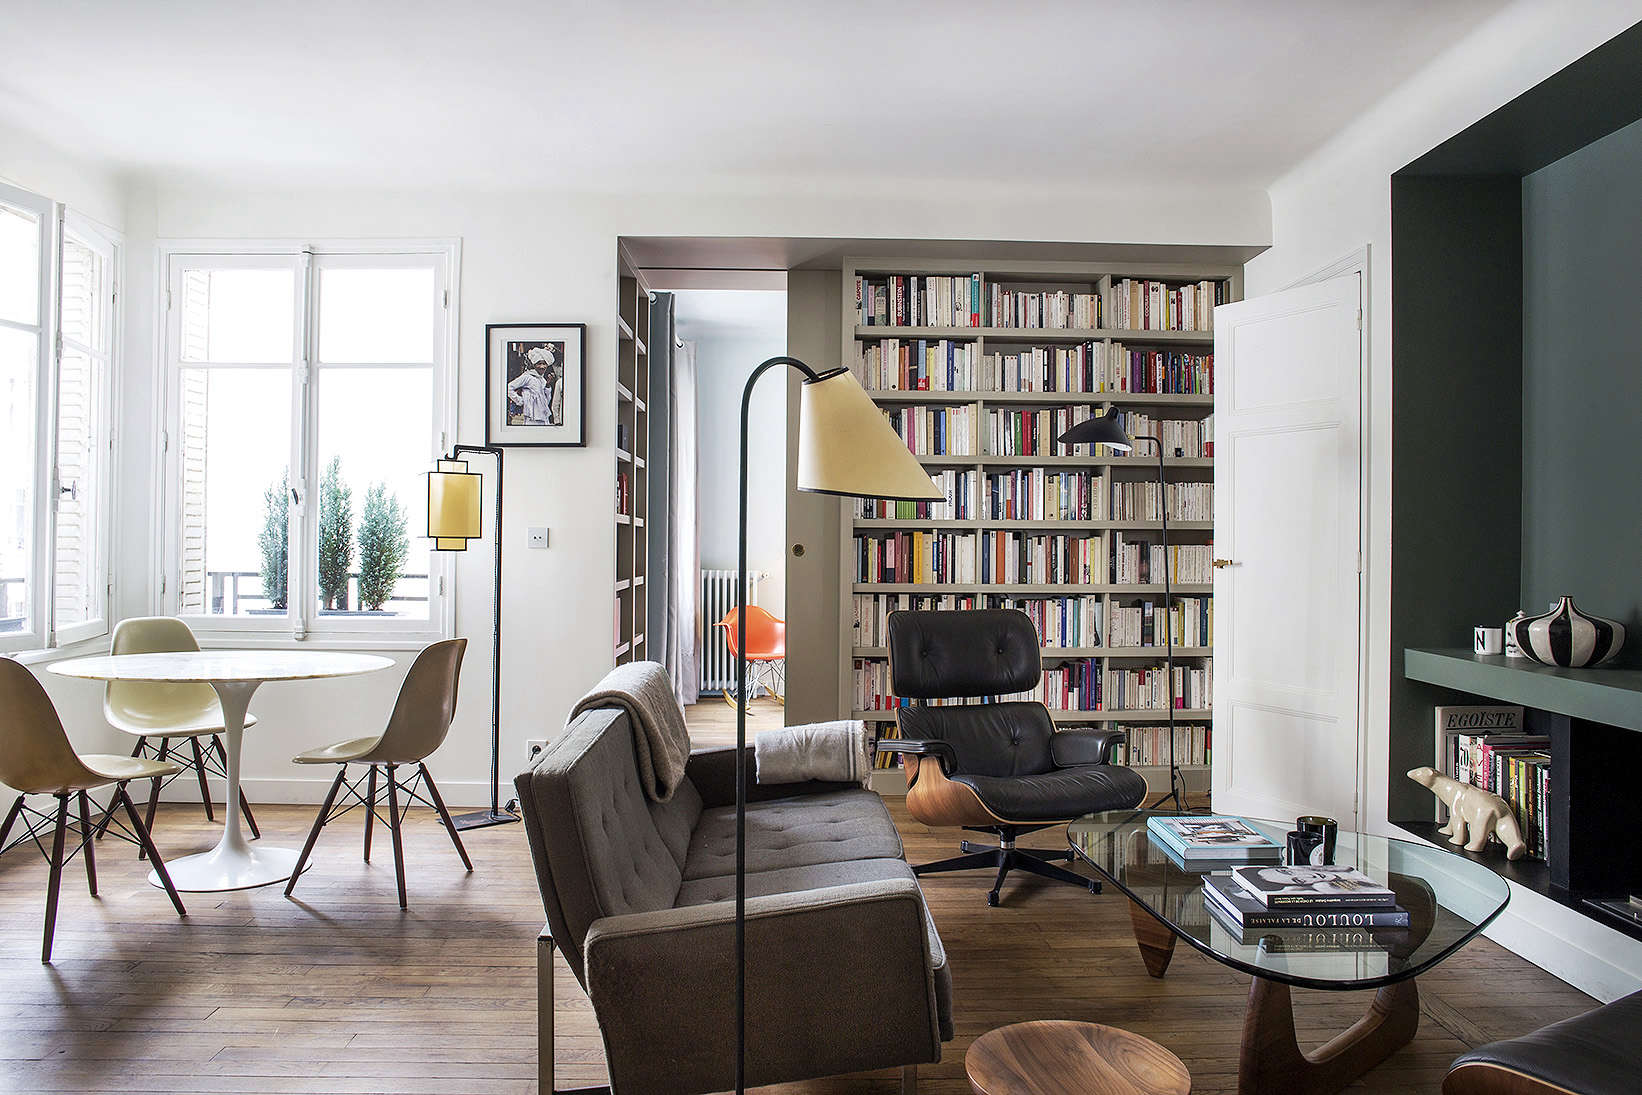 9 small space ideas to steal from a tiny paris apartment - Small space livingroom ...